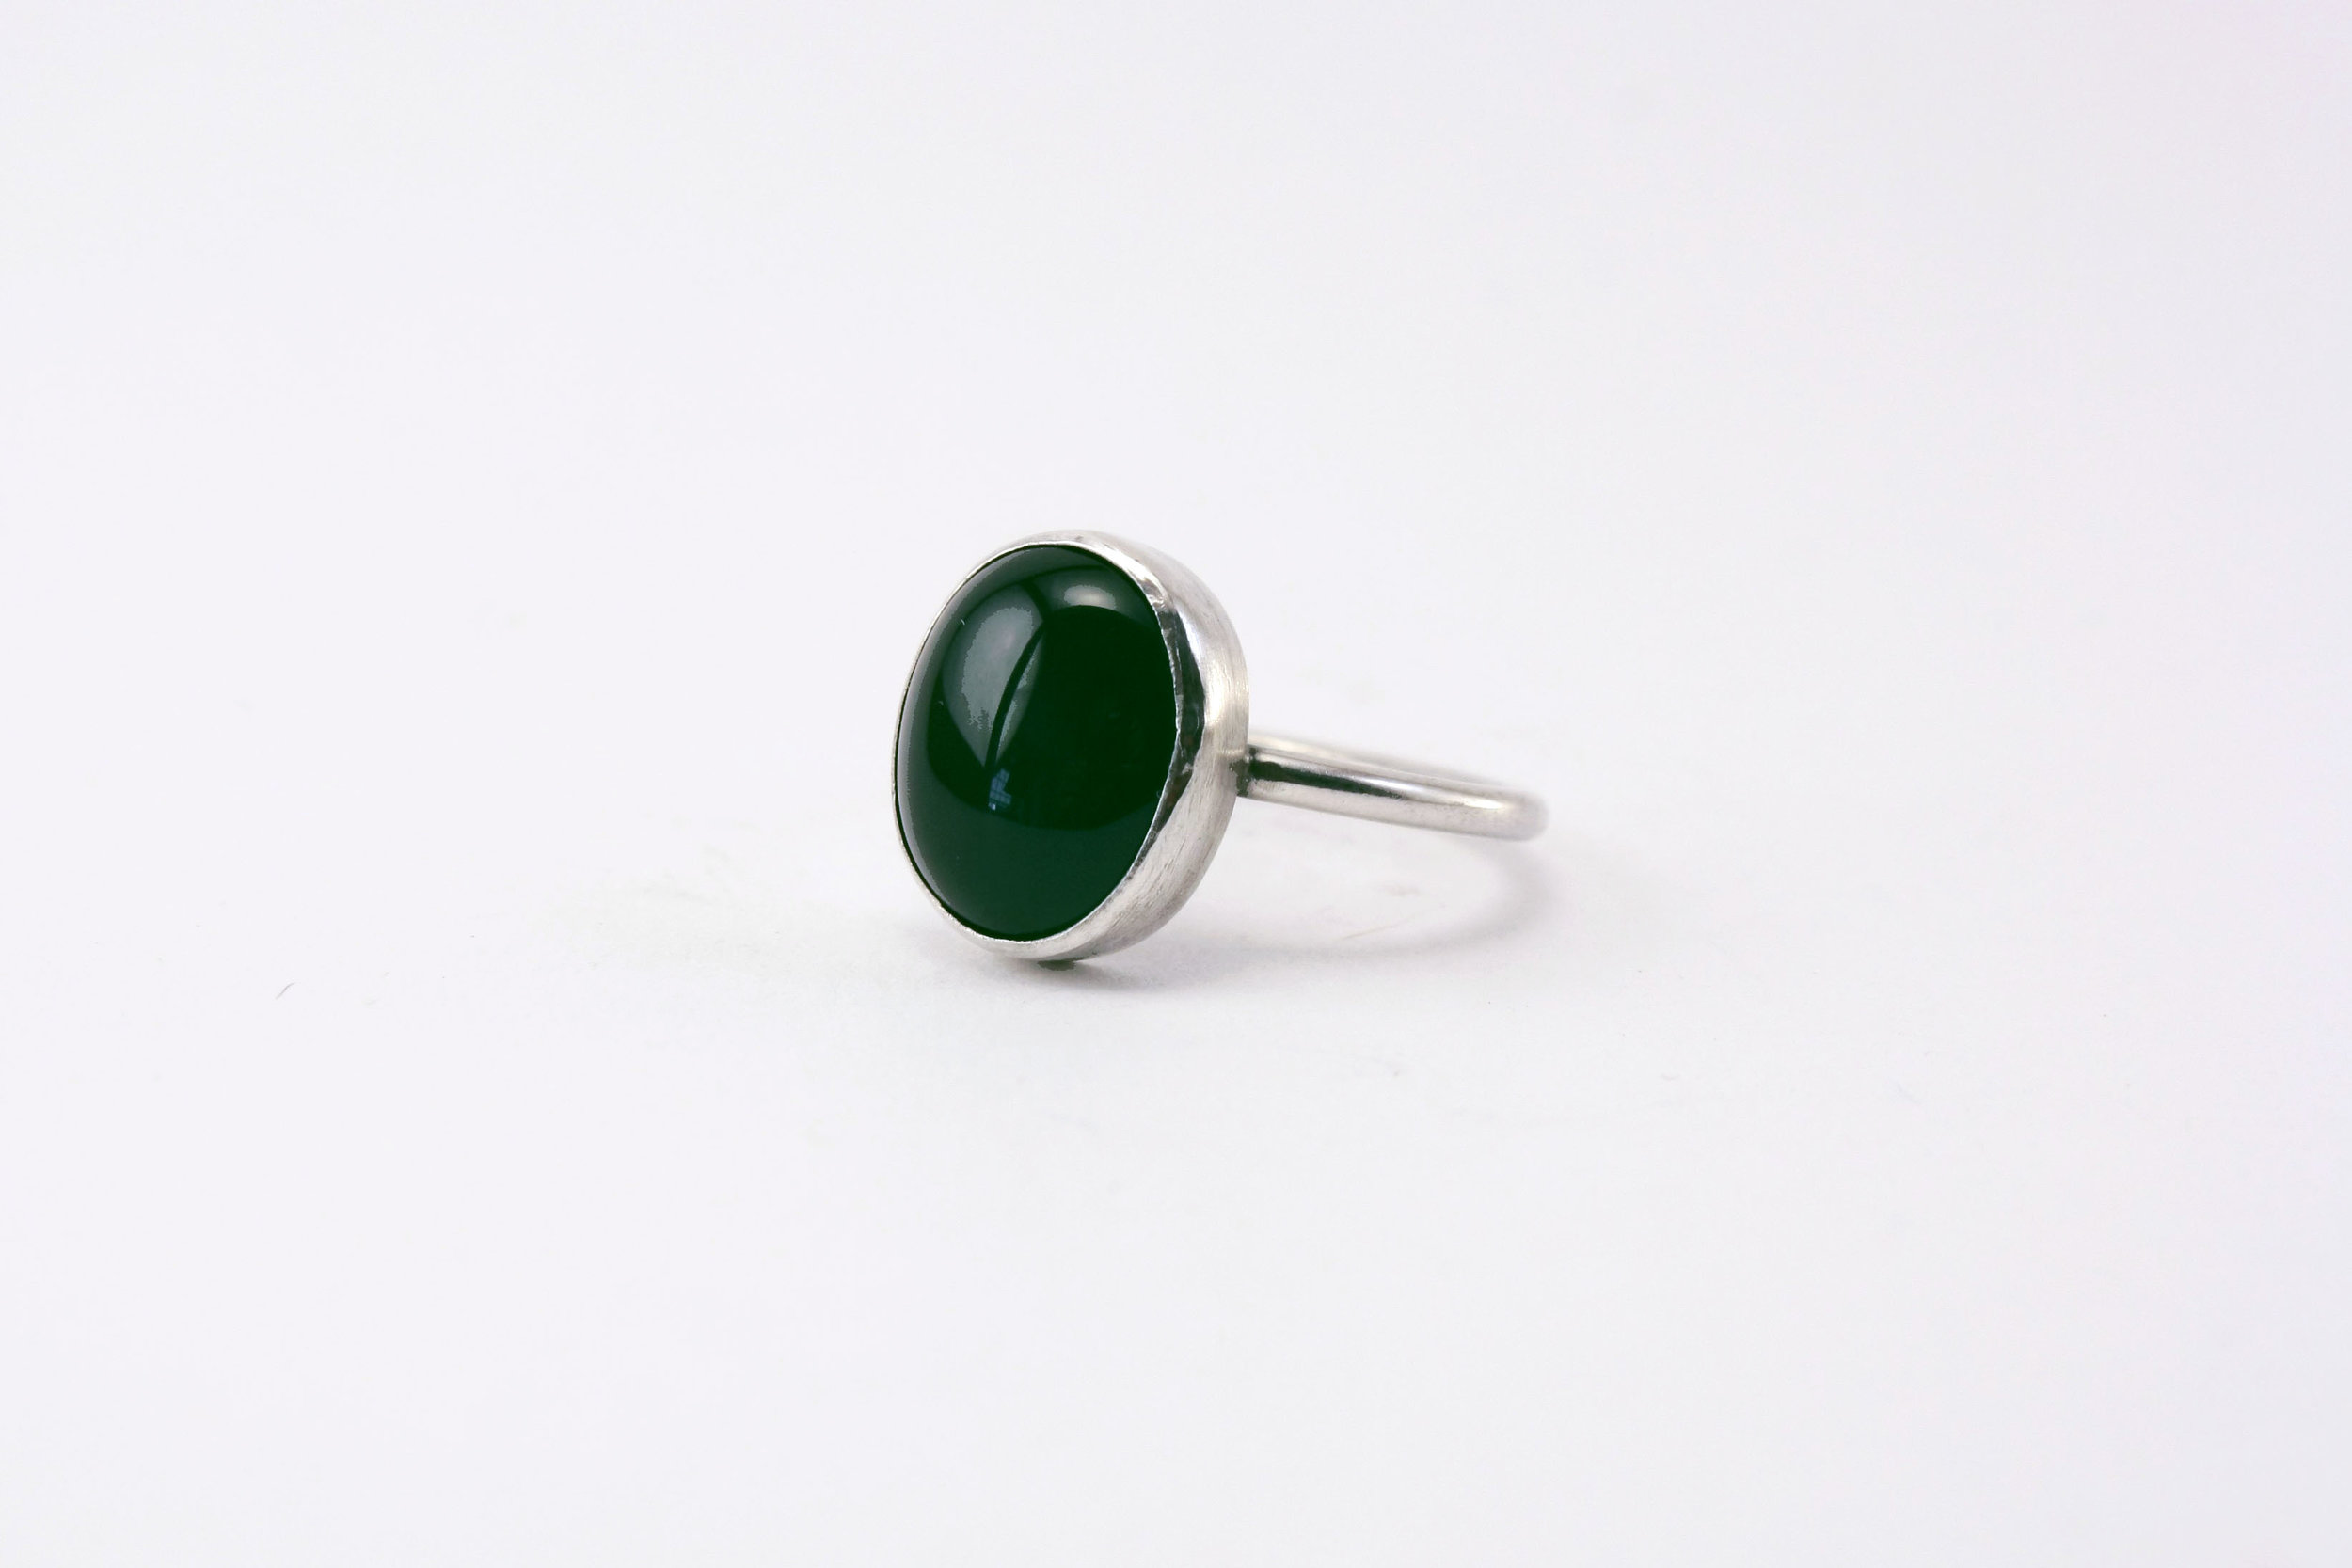 GREEN_RING_SIZE 5.5_2.jpg